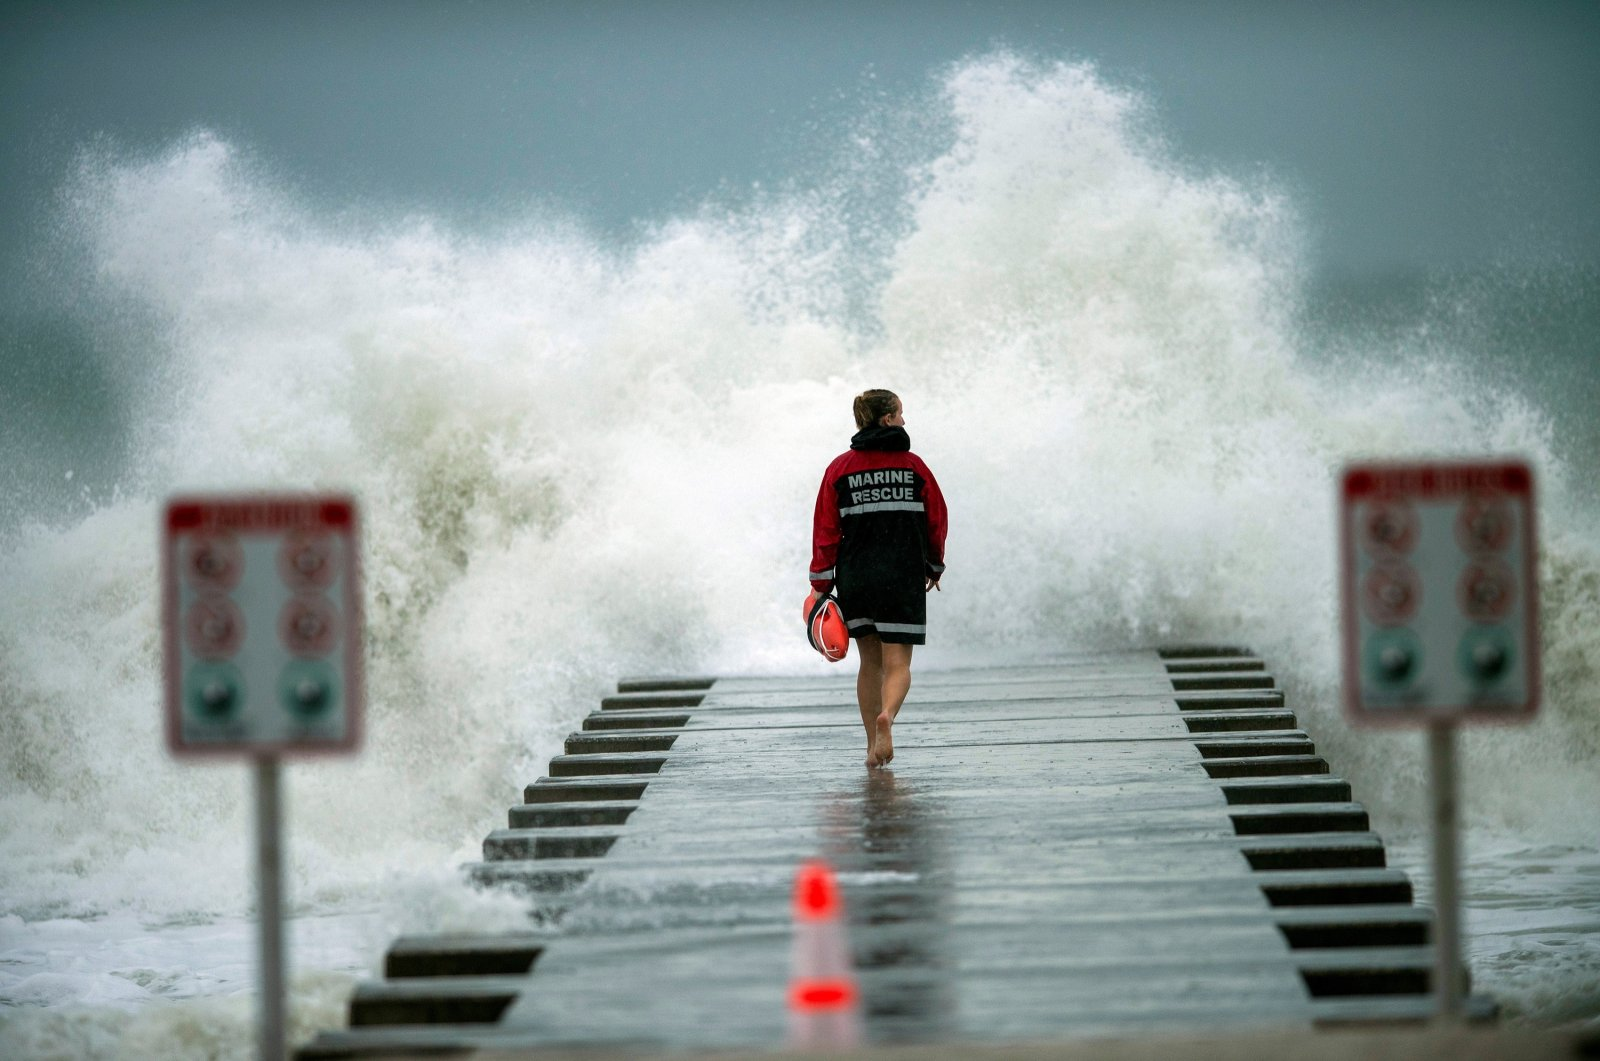 A lifeguard walks to the end of the jetty after closing it down to surfers before the arrival of Tropical Storm Eta in Bradenton Beach, Florida, U.S., Nov. 11, 2020. (Reuters Photo)